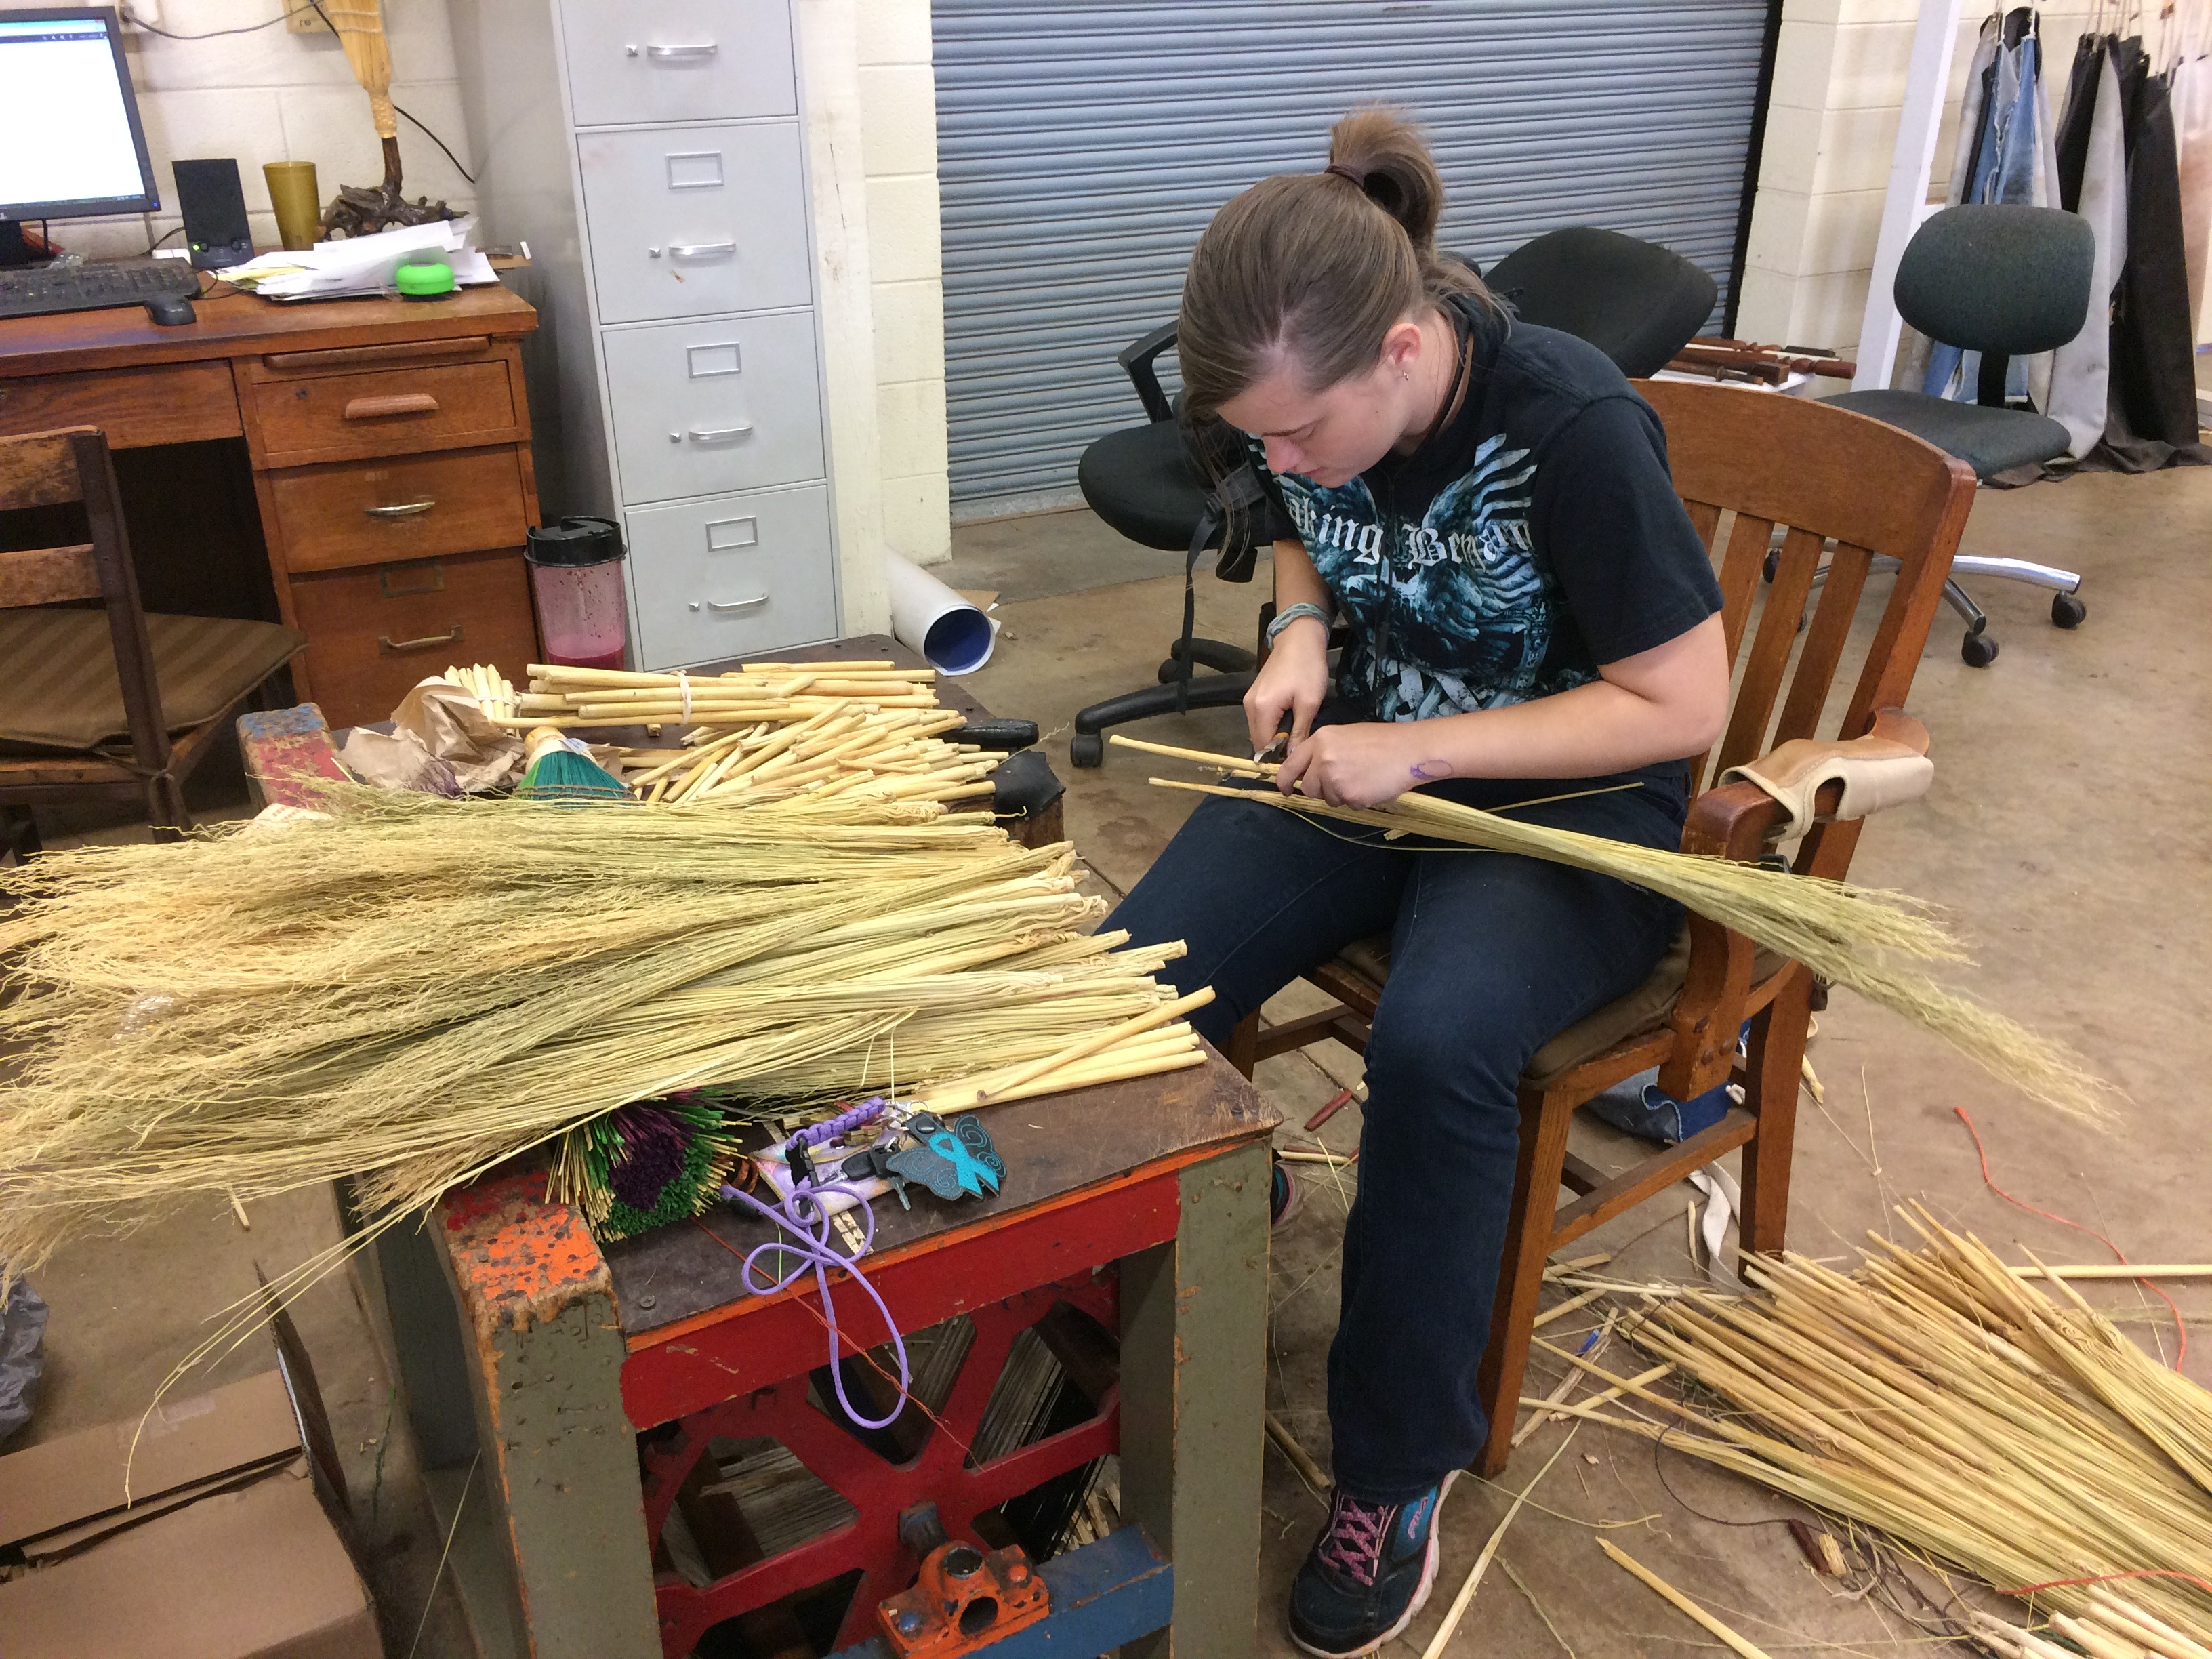 Berea requires students to work at least 10 hours per week on campus. Among the more unique programs is the school's broom studio, which sells its products around campus and online.